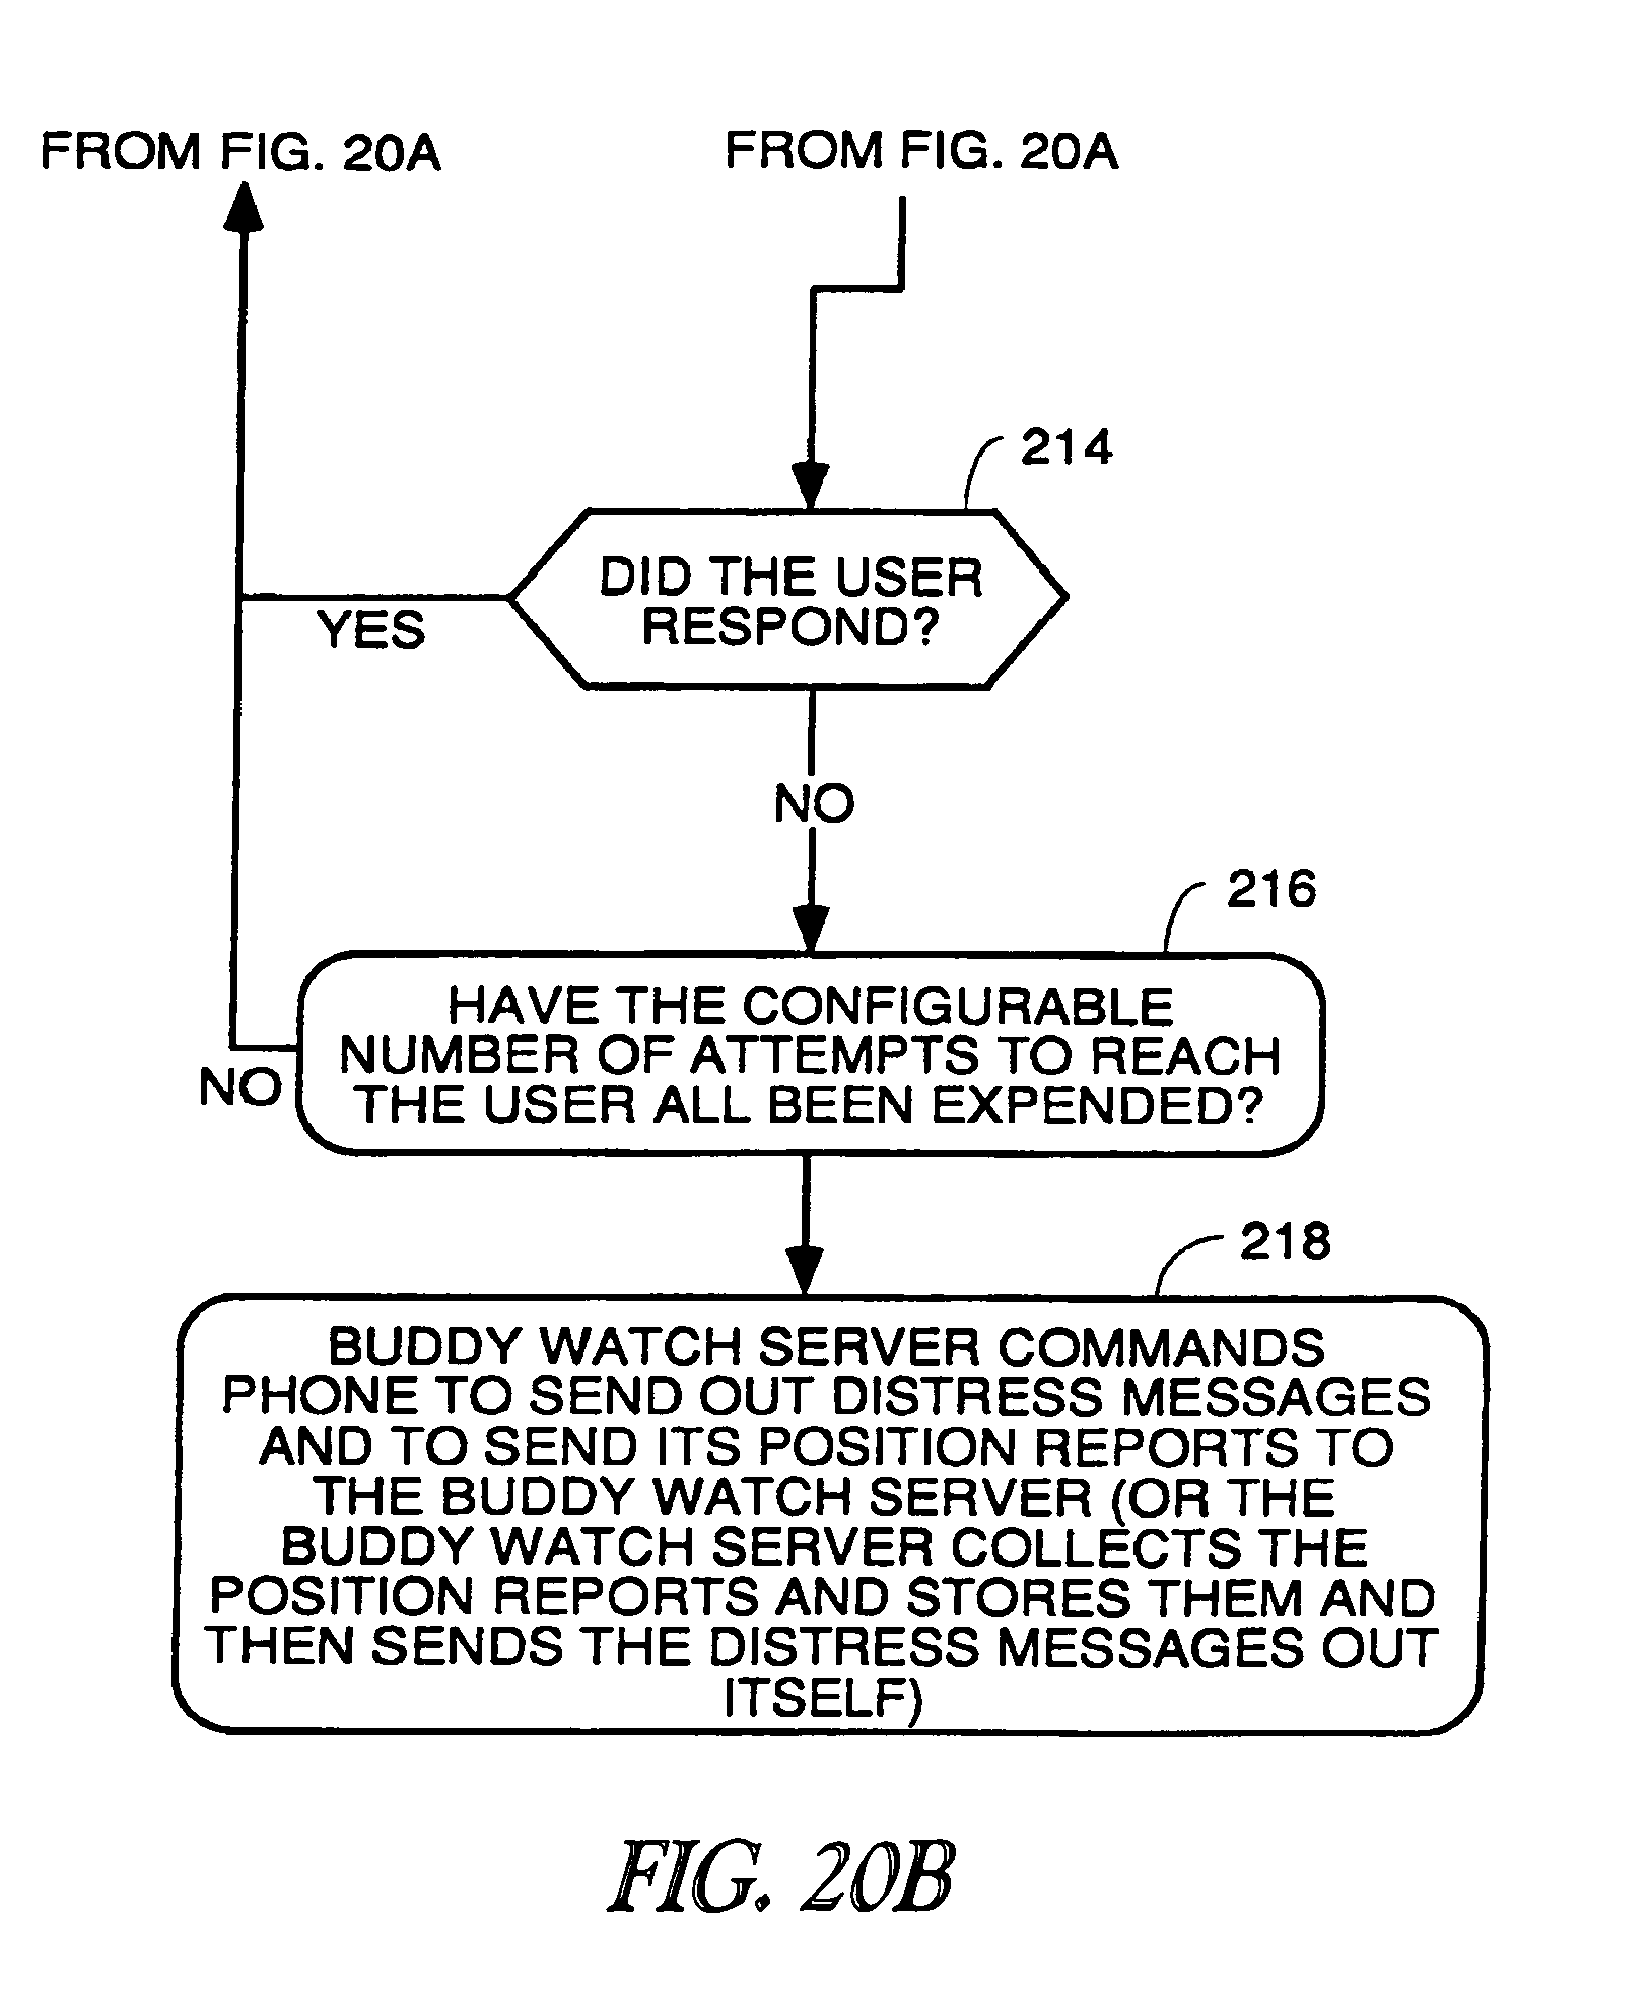 Us8385964b2 Methods And Apparatuses For Geospatial Based Sharing